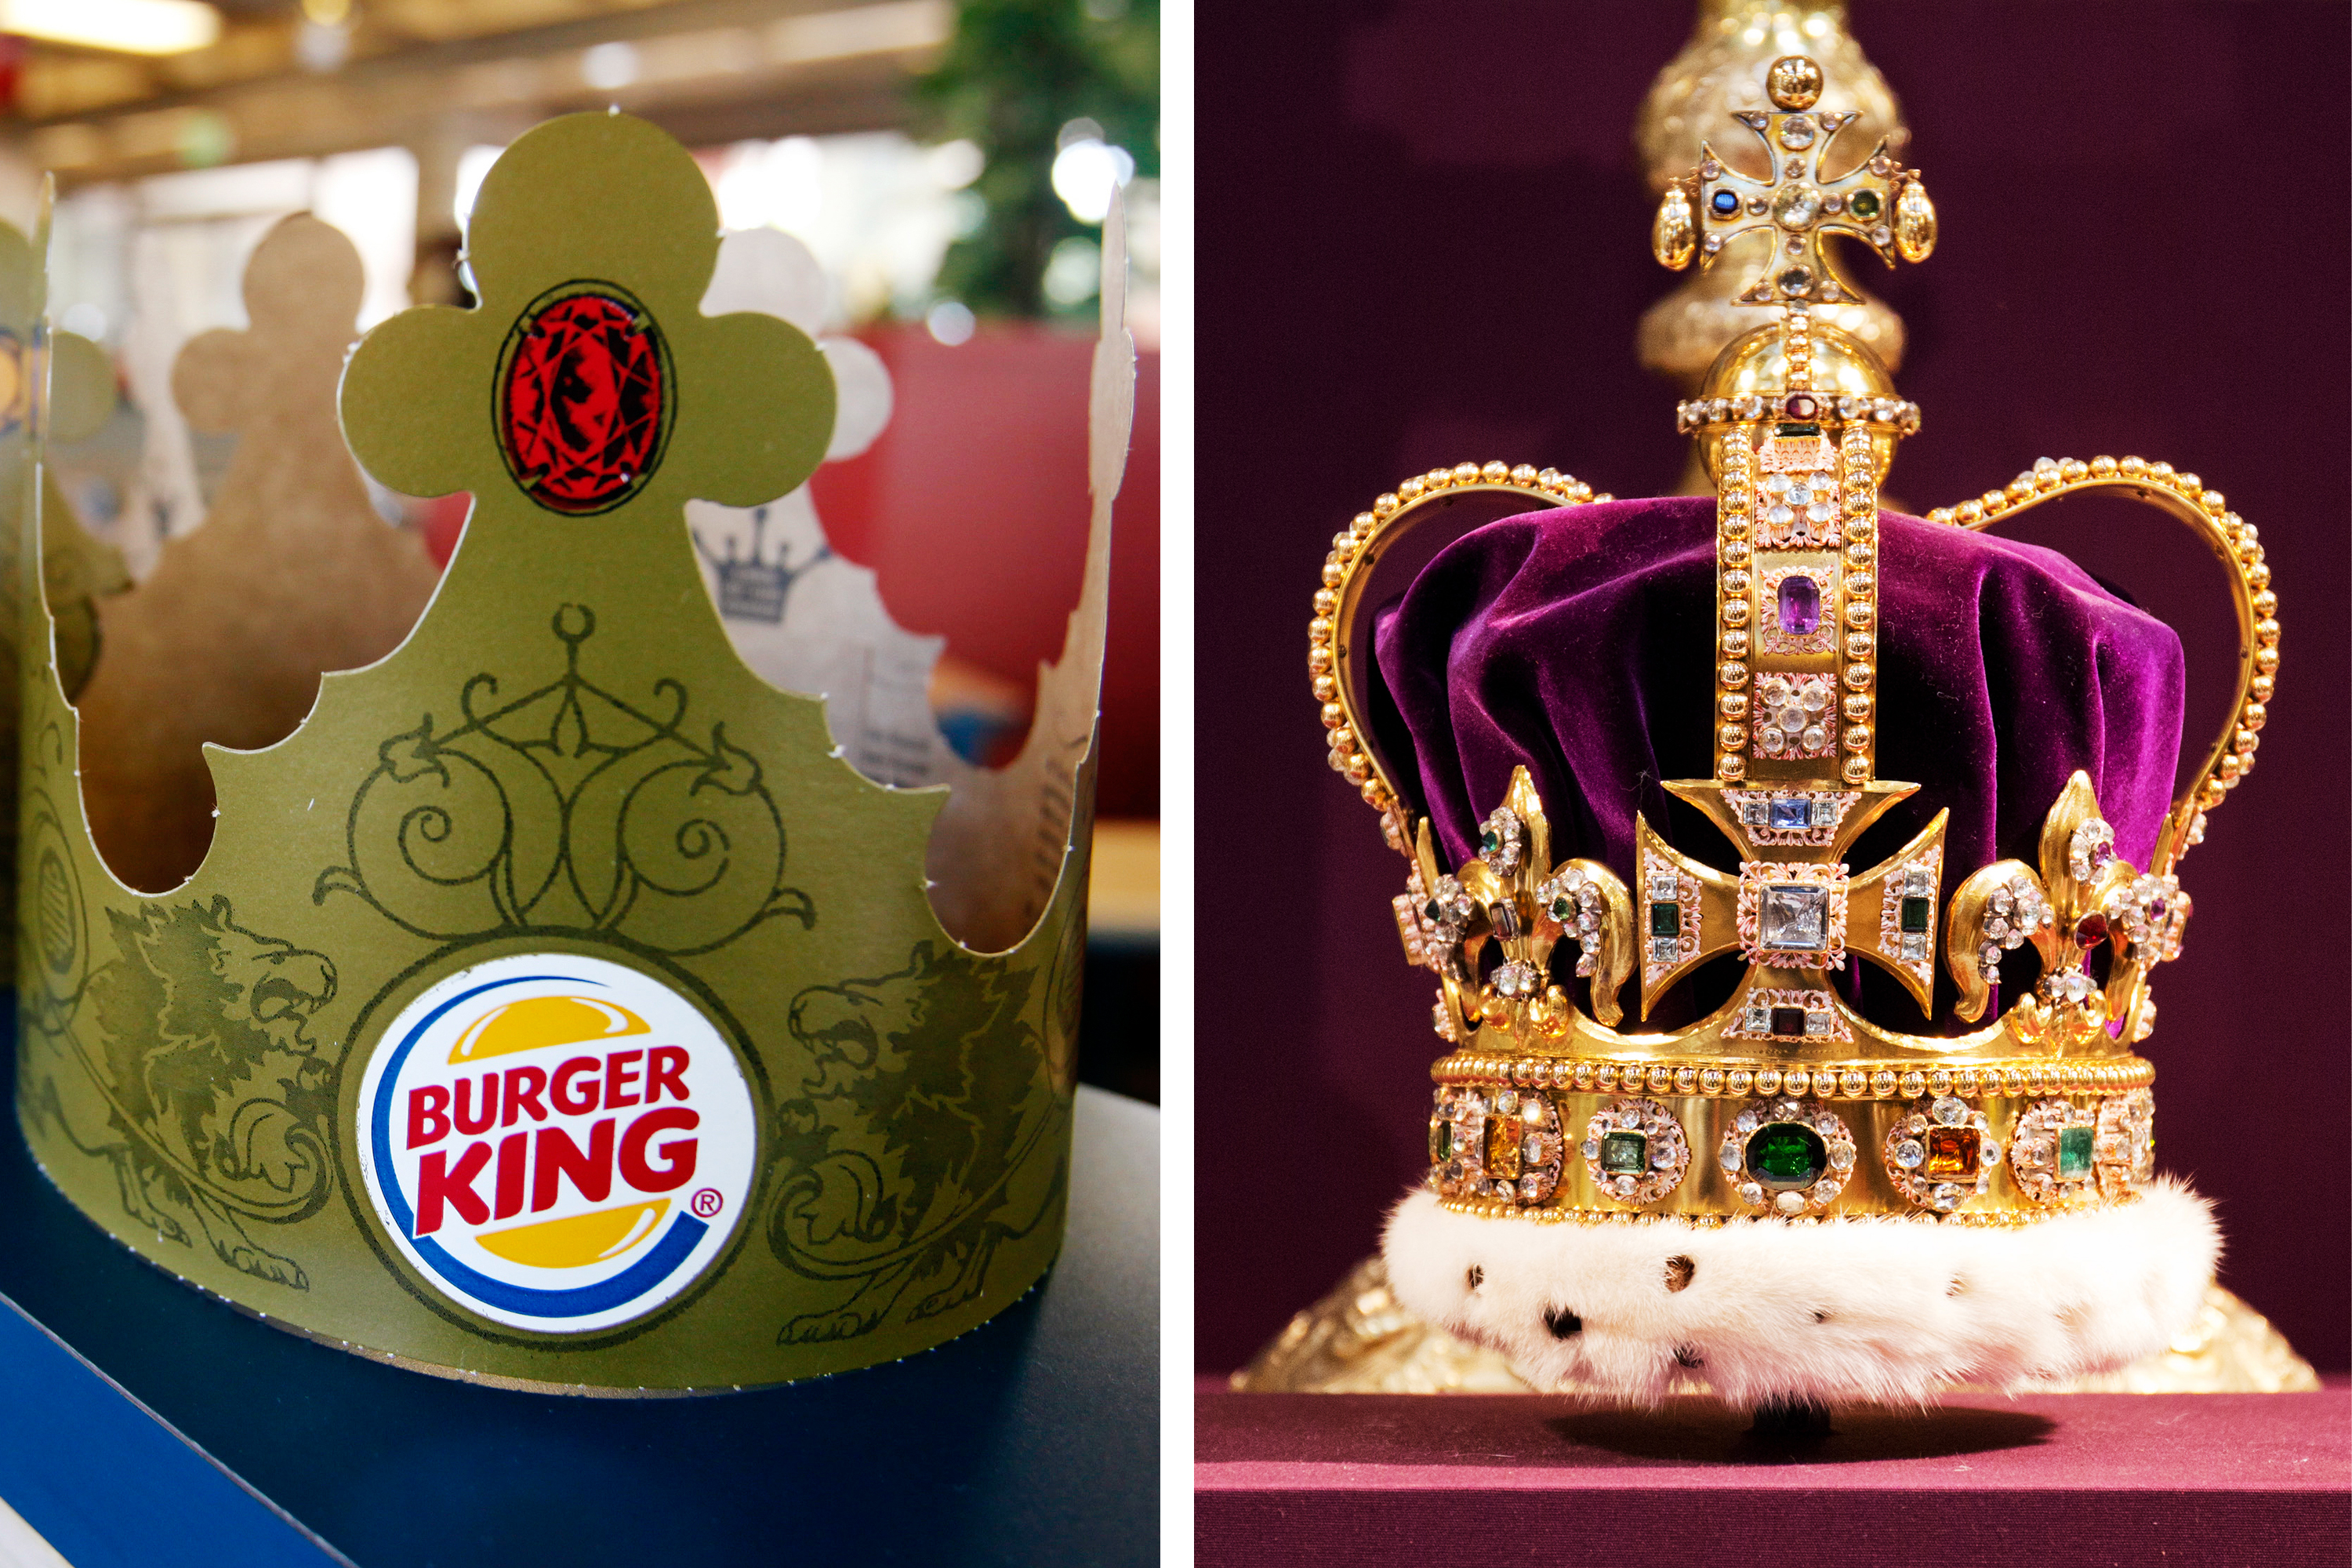 GOING ROYAL                                                                                      The King becomes the subject of a company in an actual Kingdom in 1988, when UK-based Grand Metropolitan PLC acquired Pillsbury—including Burger King—for $5.8 billion.